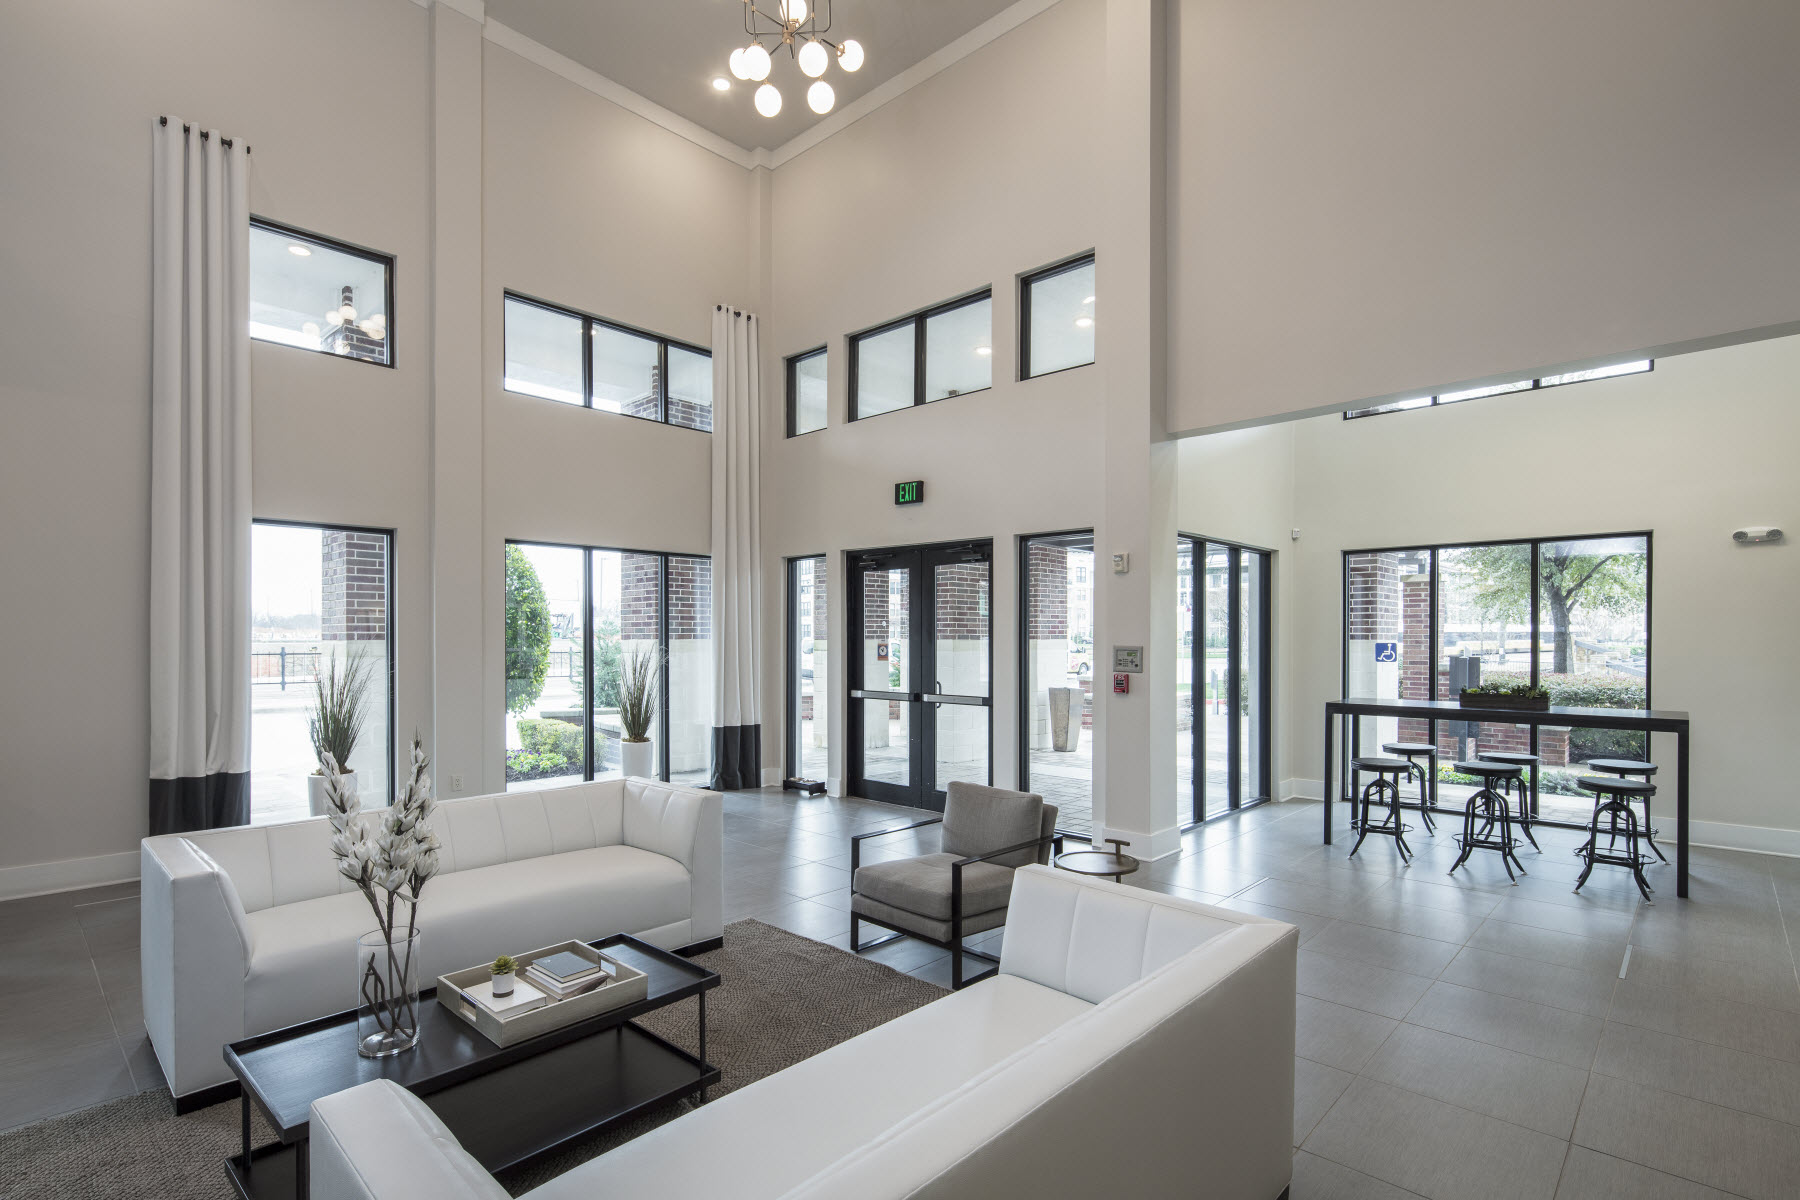 Imt Lakeshore Lofts Furnished Short Term Rentals In